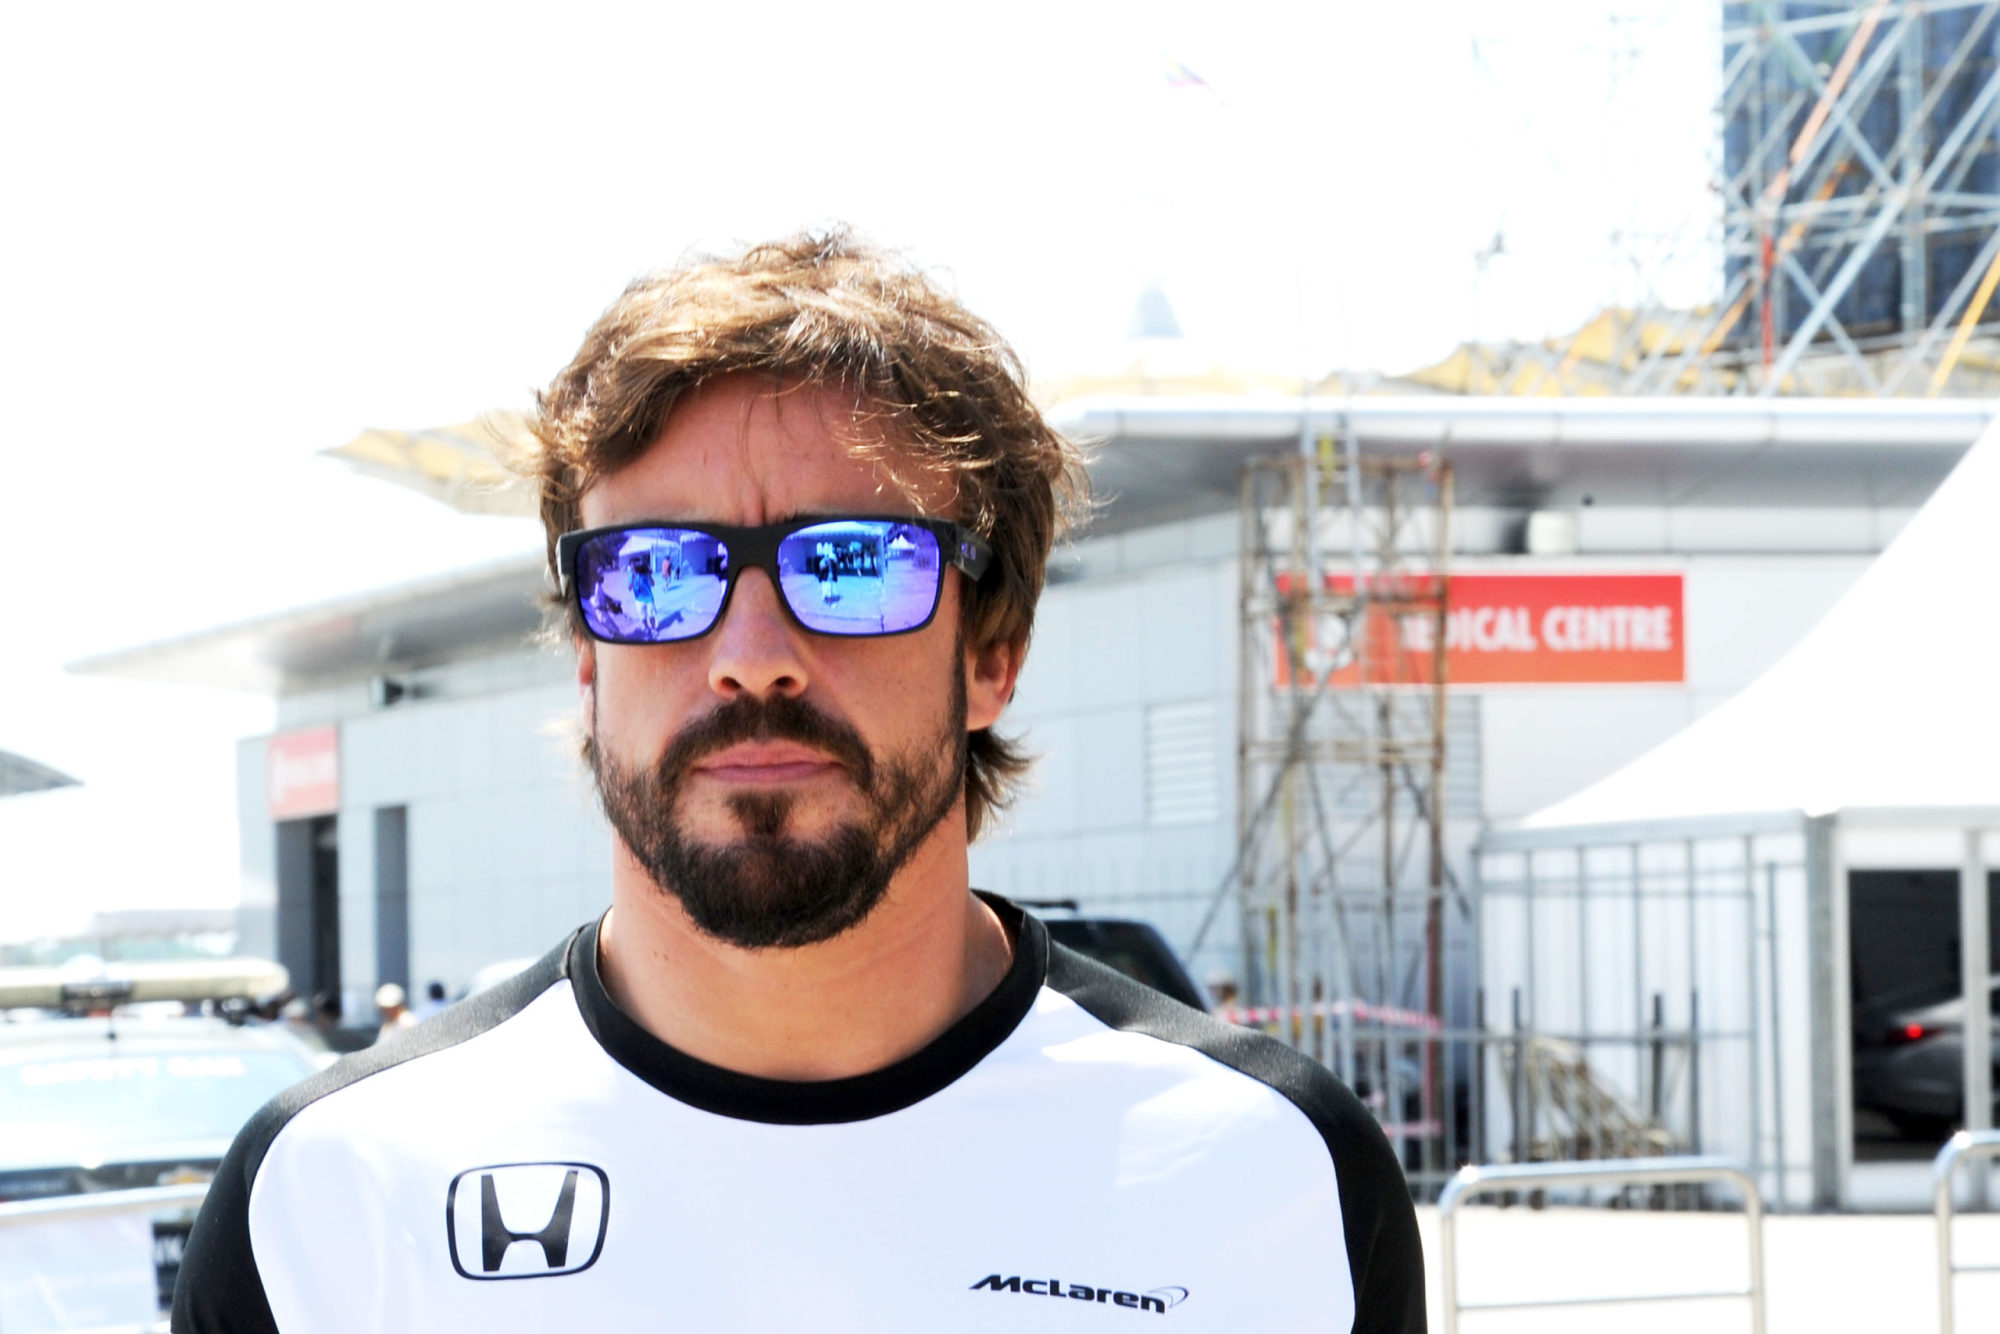 fernando-alonso_northfoto-scaled.jpg